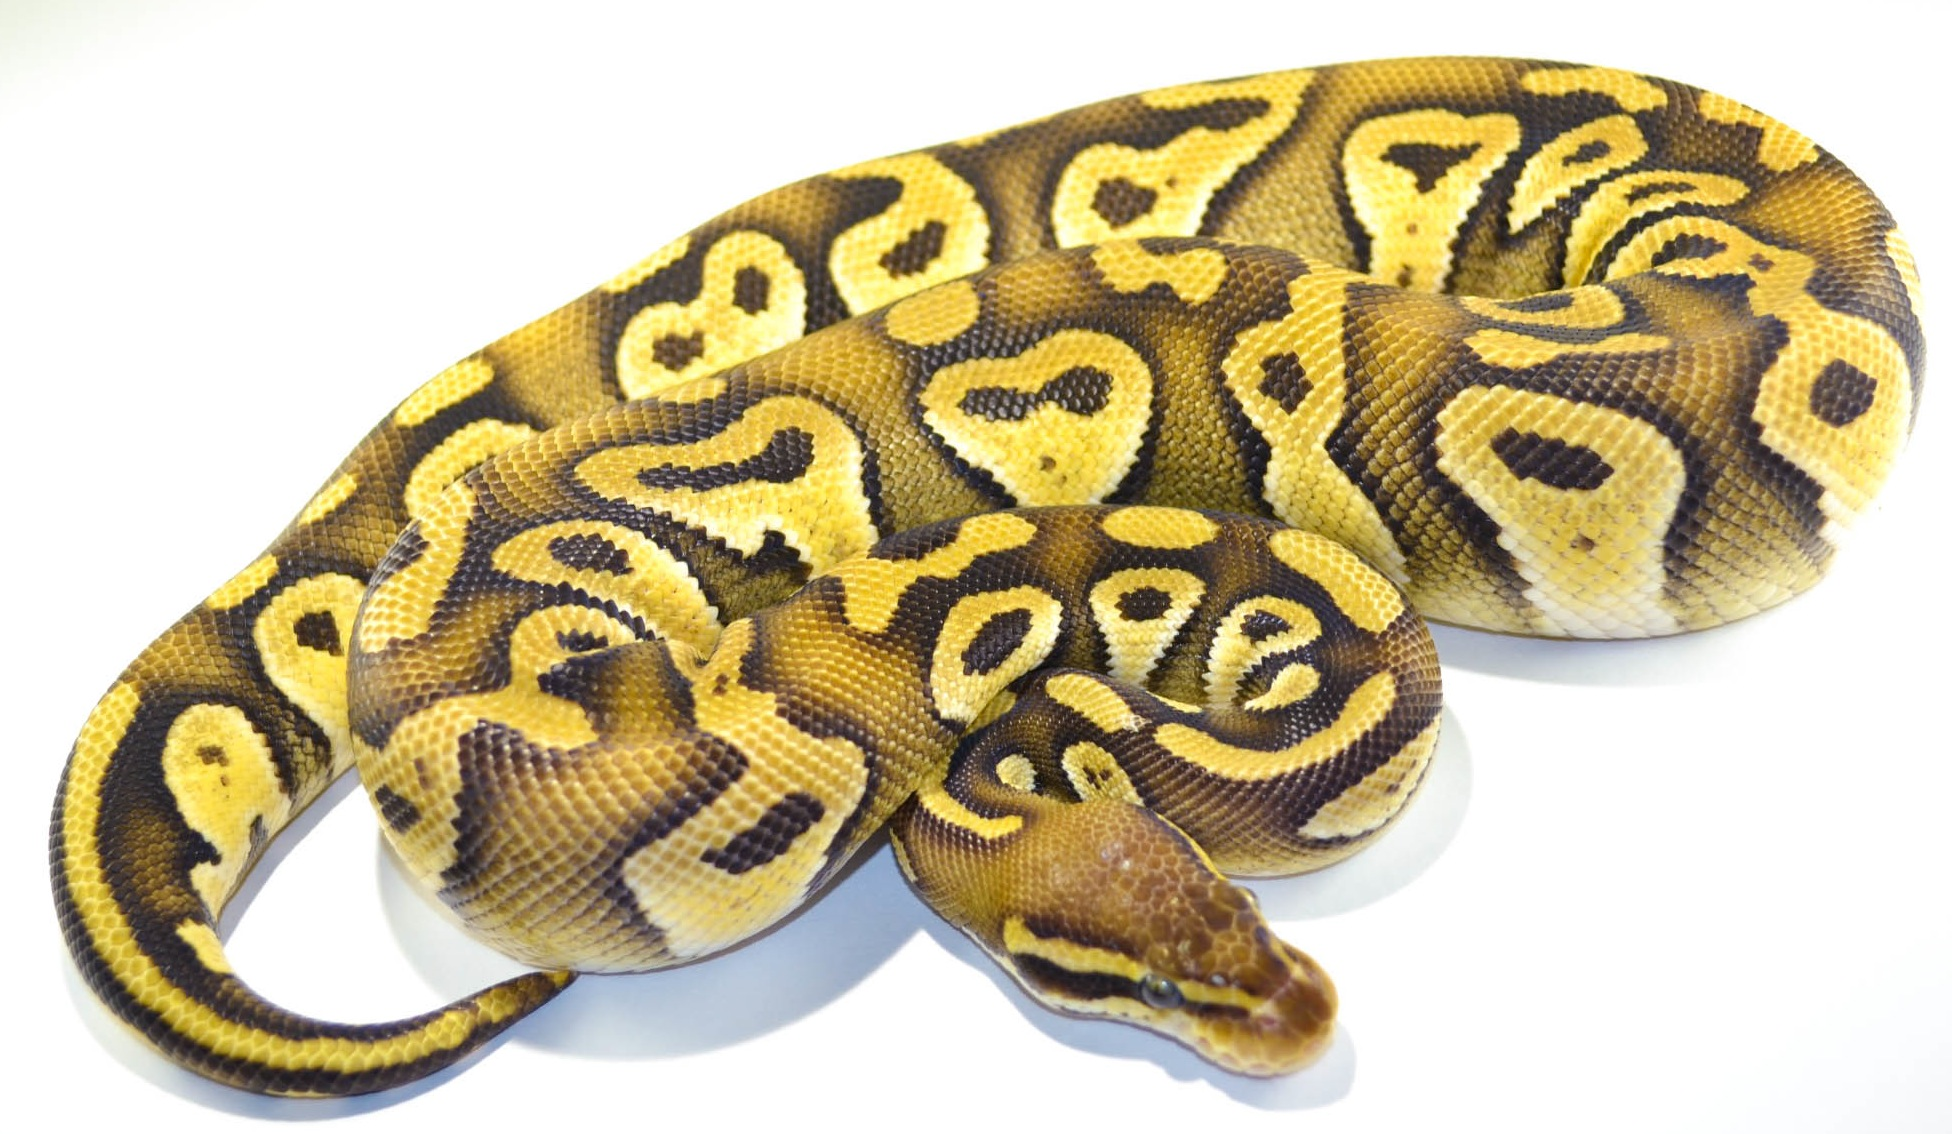 ball python Largest selection of ball python morphs in the world browse 11162 ball python morphs for sale in the united states by genes color-coded to show dominance and zygosity index shows frequency of each trait count and links to ads for sale.